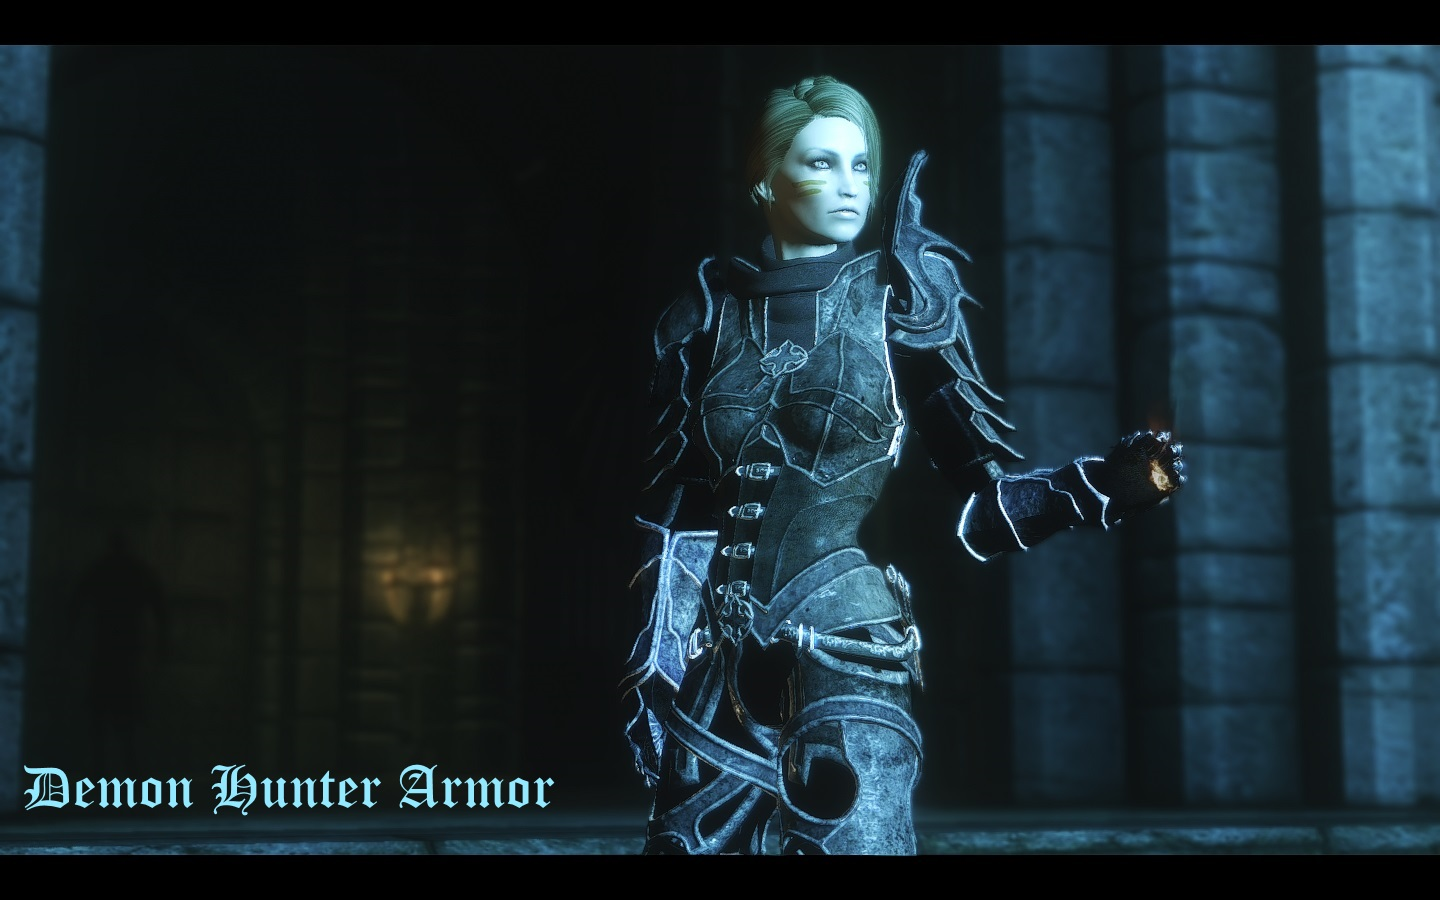 Demon_Hunter_Armor_00.jpg